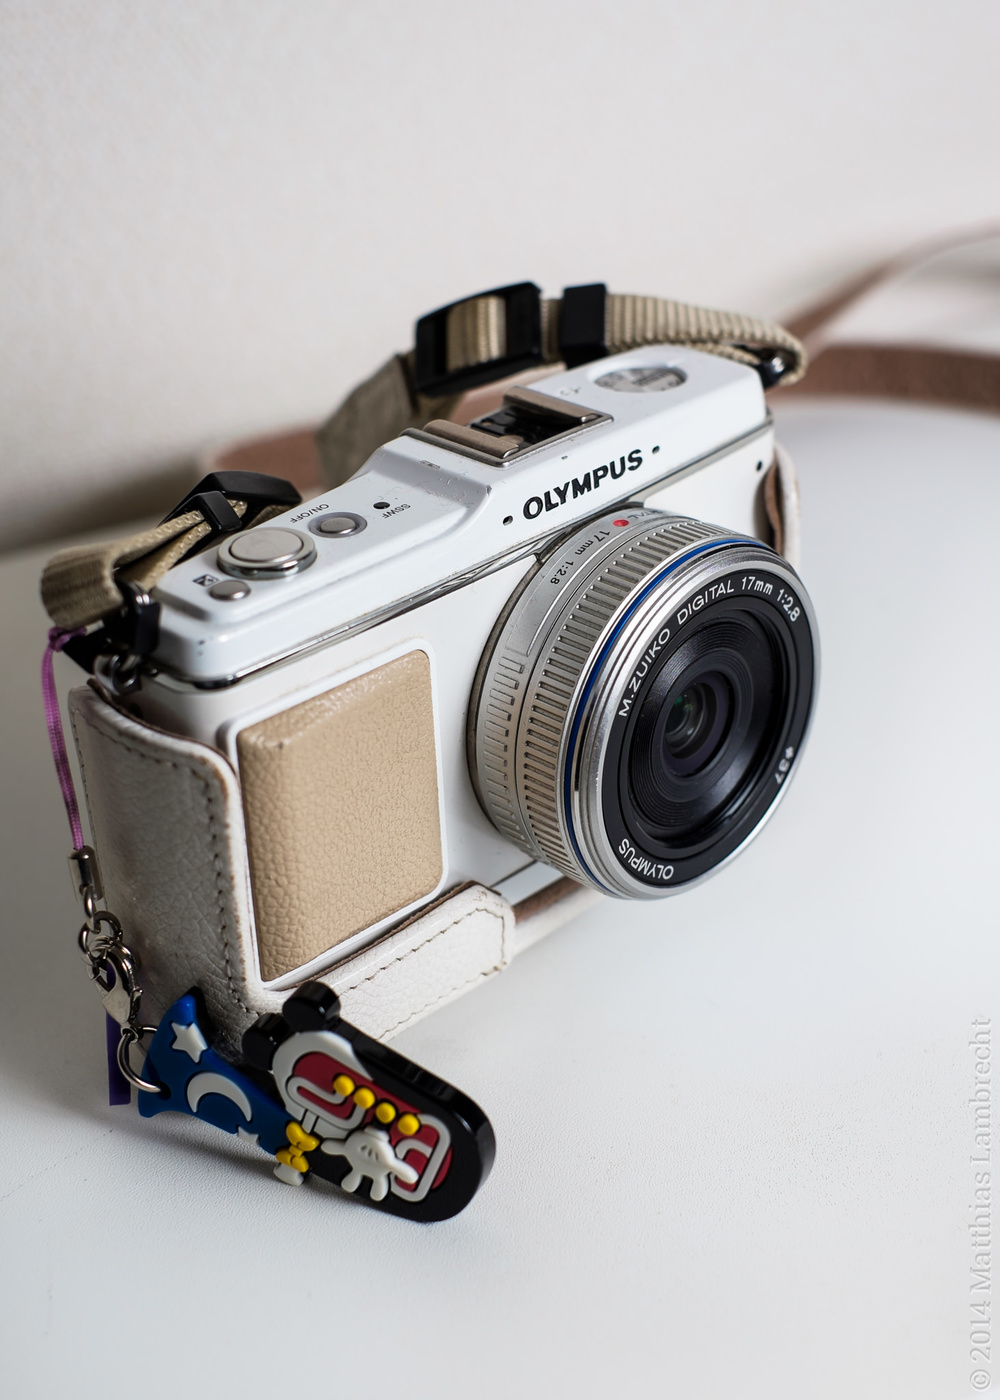 The Olympus Pen E-P1 with the 17mm pancake lens.